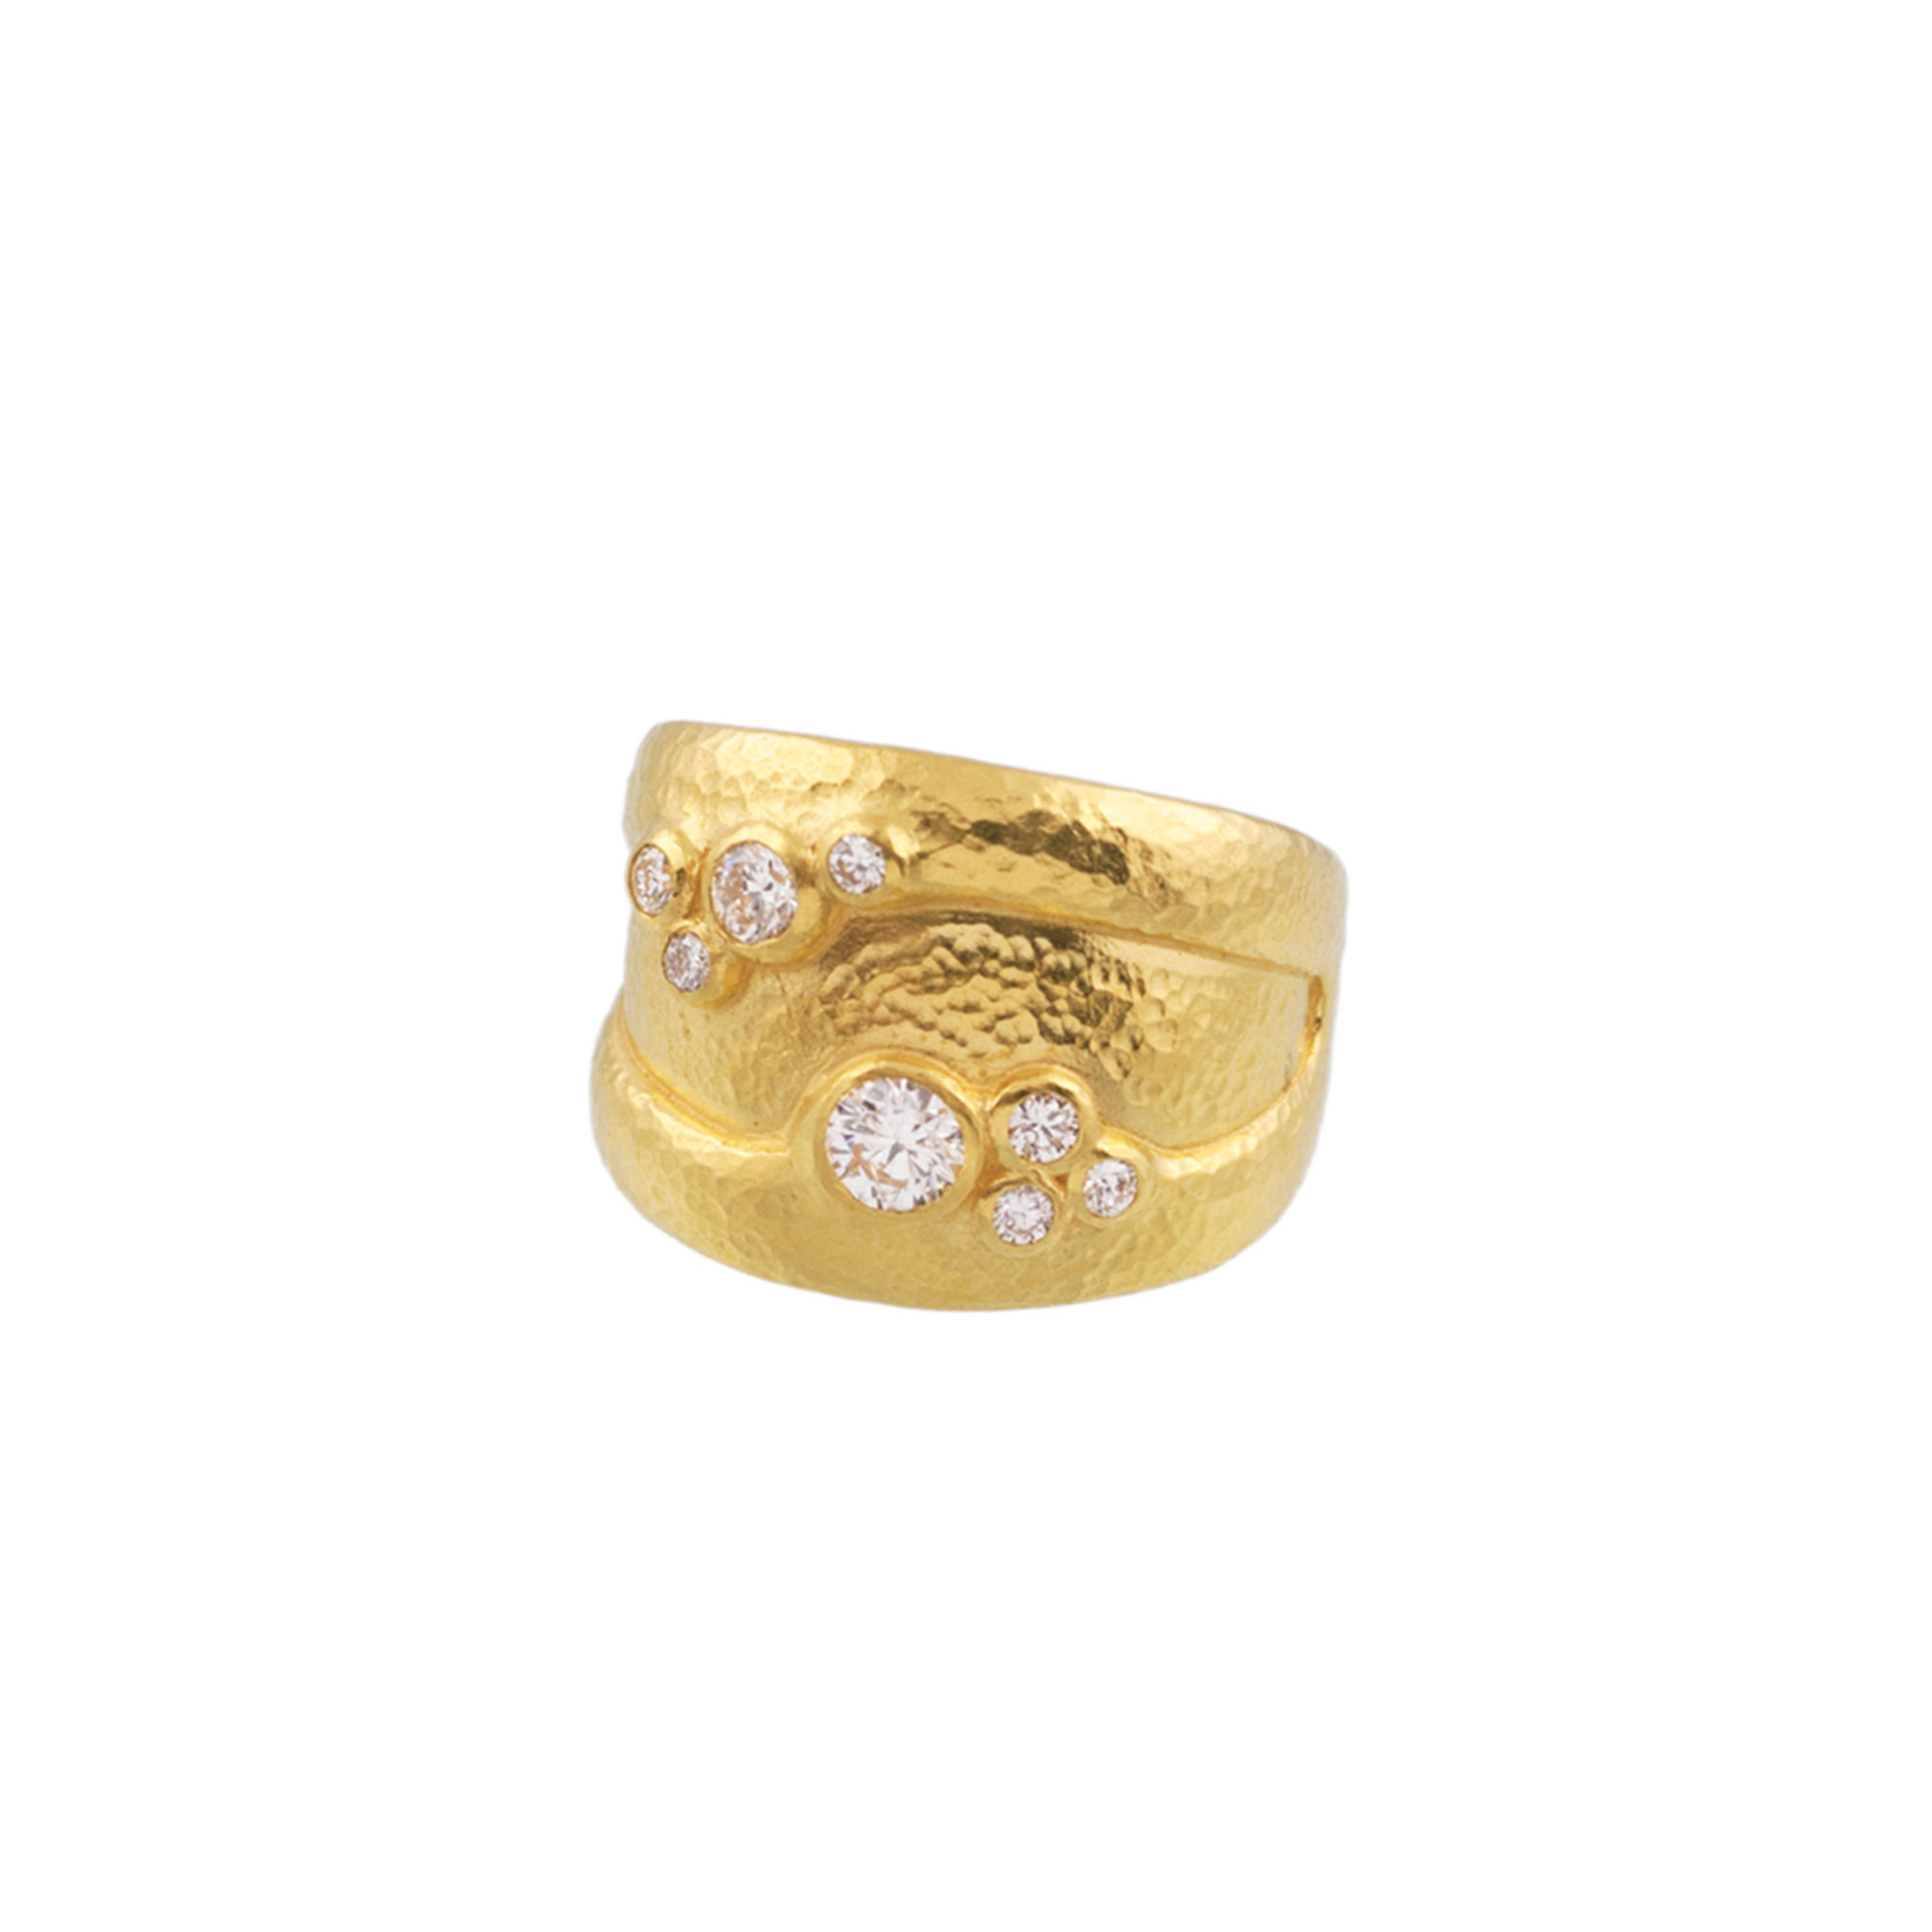 Gurhan 22K Yellow Gold .58cts White Diamond Gold Ring with Stones R-SCTDI-DB-SO-WV